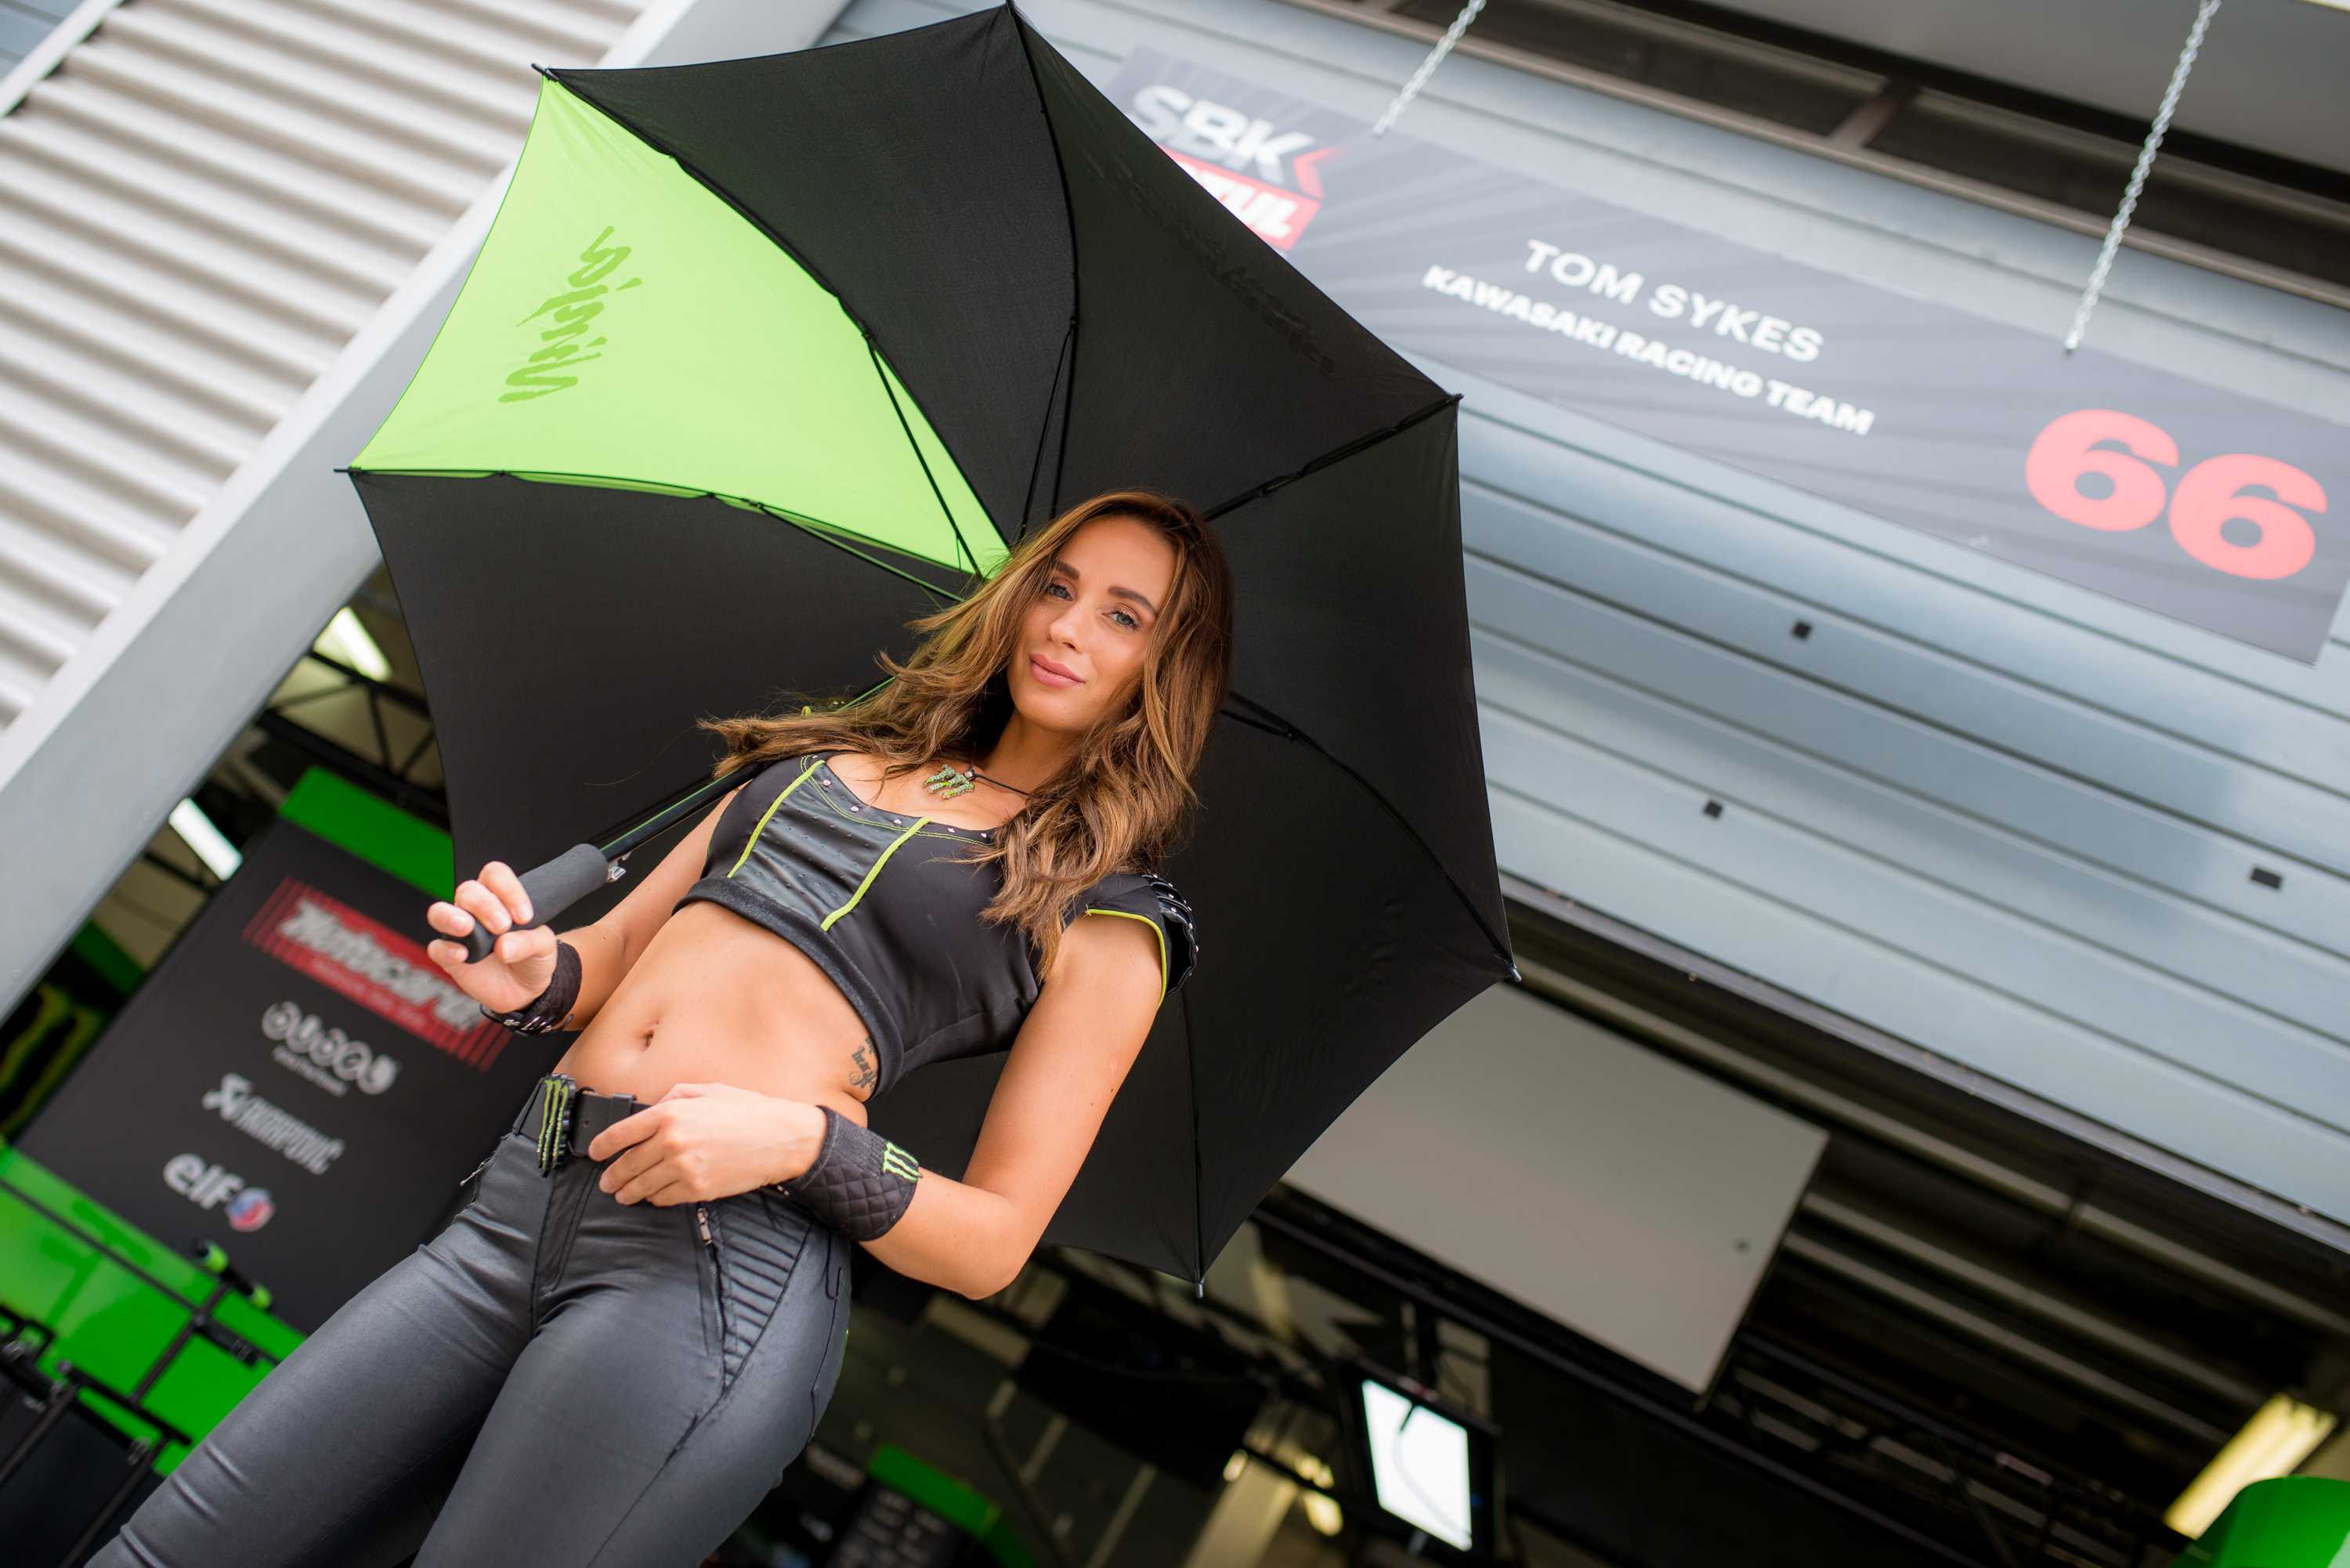 monster girl germany casting grid umbrella paddock monstergirls deutschland germany europe bensch media_0